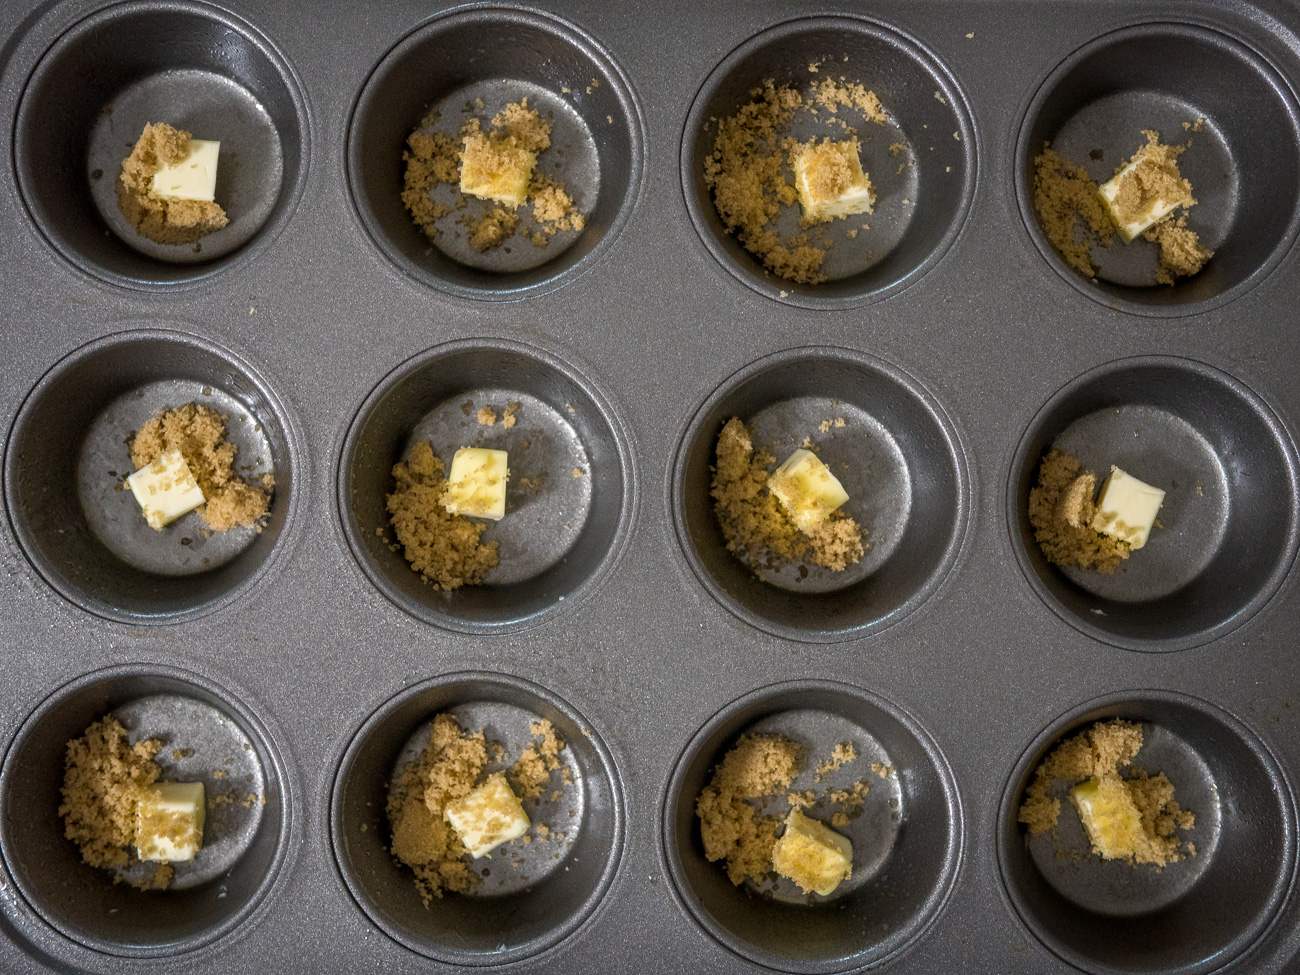 Prepare the muffin tin by dividing the 1 tablespoon of butter into 12 portions, placing one portion in each of the 12 cups of the cups. Sprinkle 1/2 teaspoon of brown sugar into each cup as well.